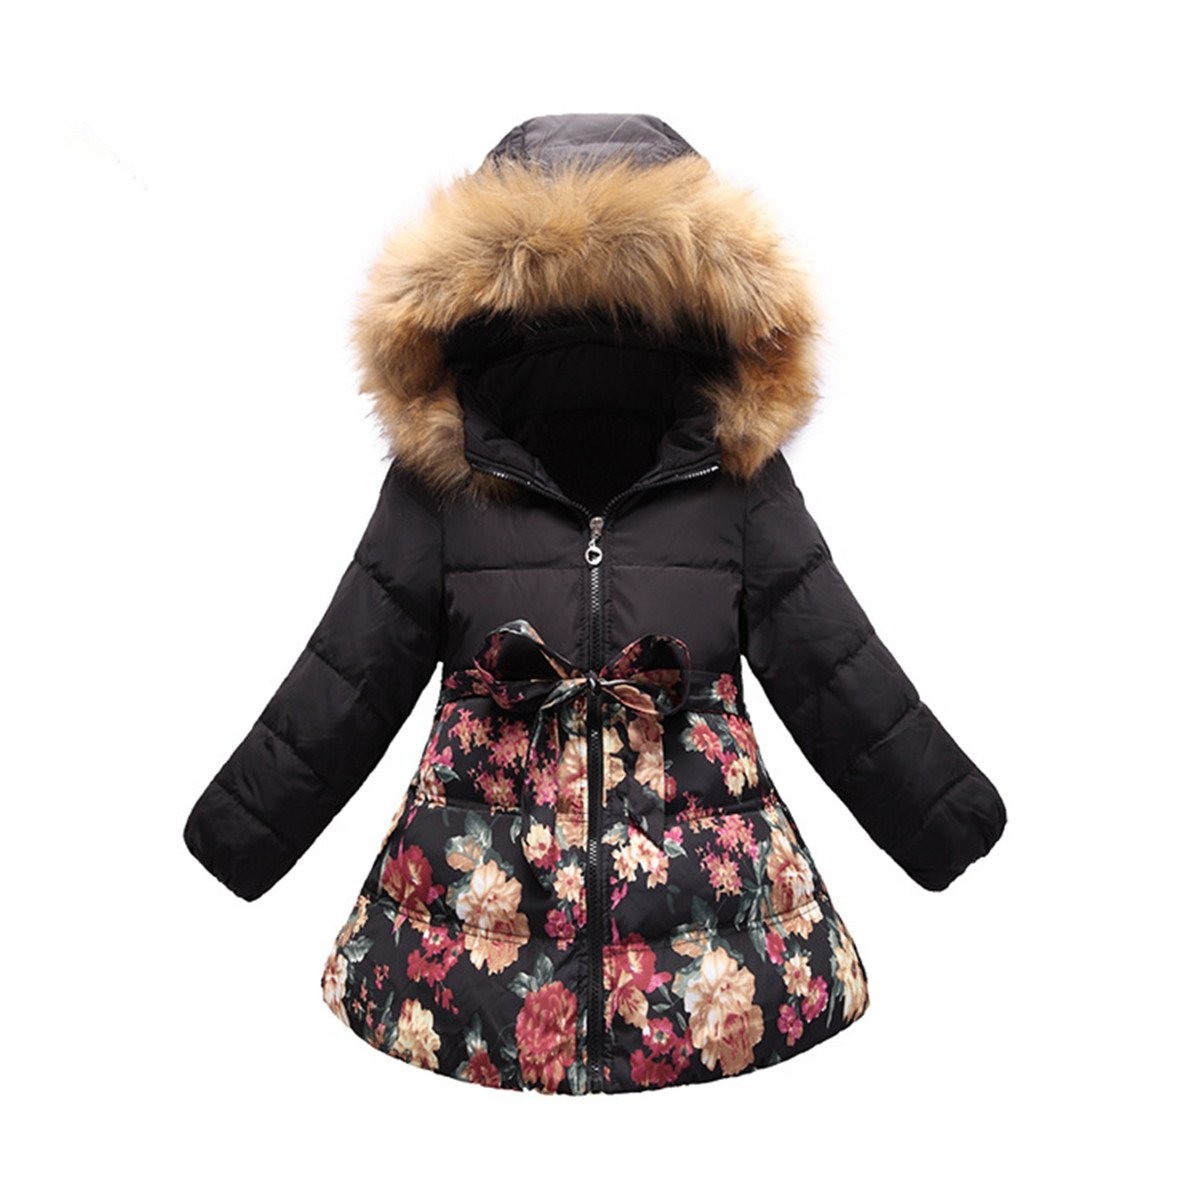 Ecollection Girls Kids Padded Winter Coat Flower Hooded Jacket